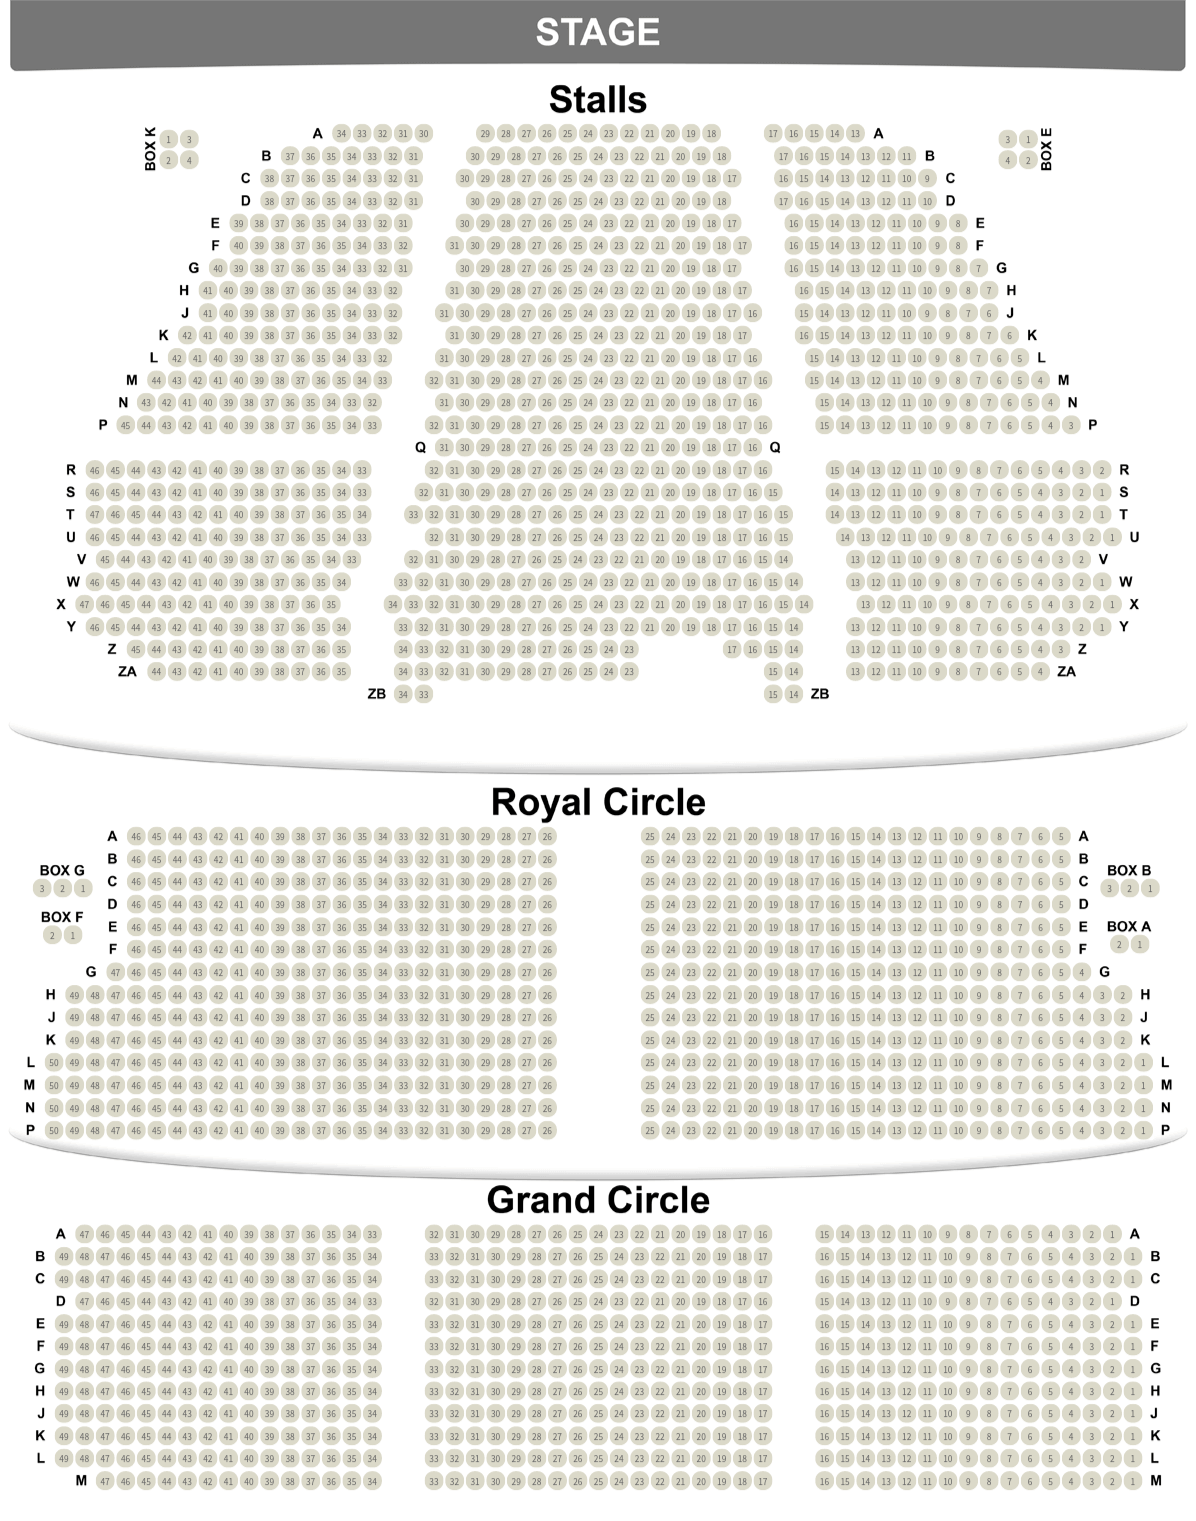 Lyceum Theatre seating plan